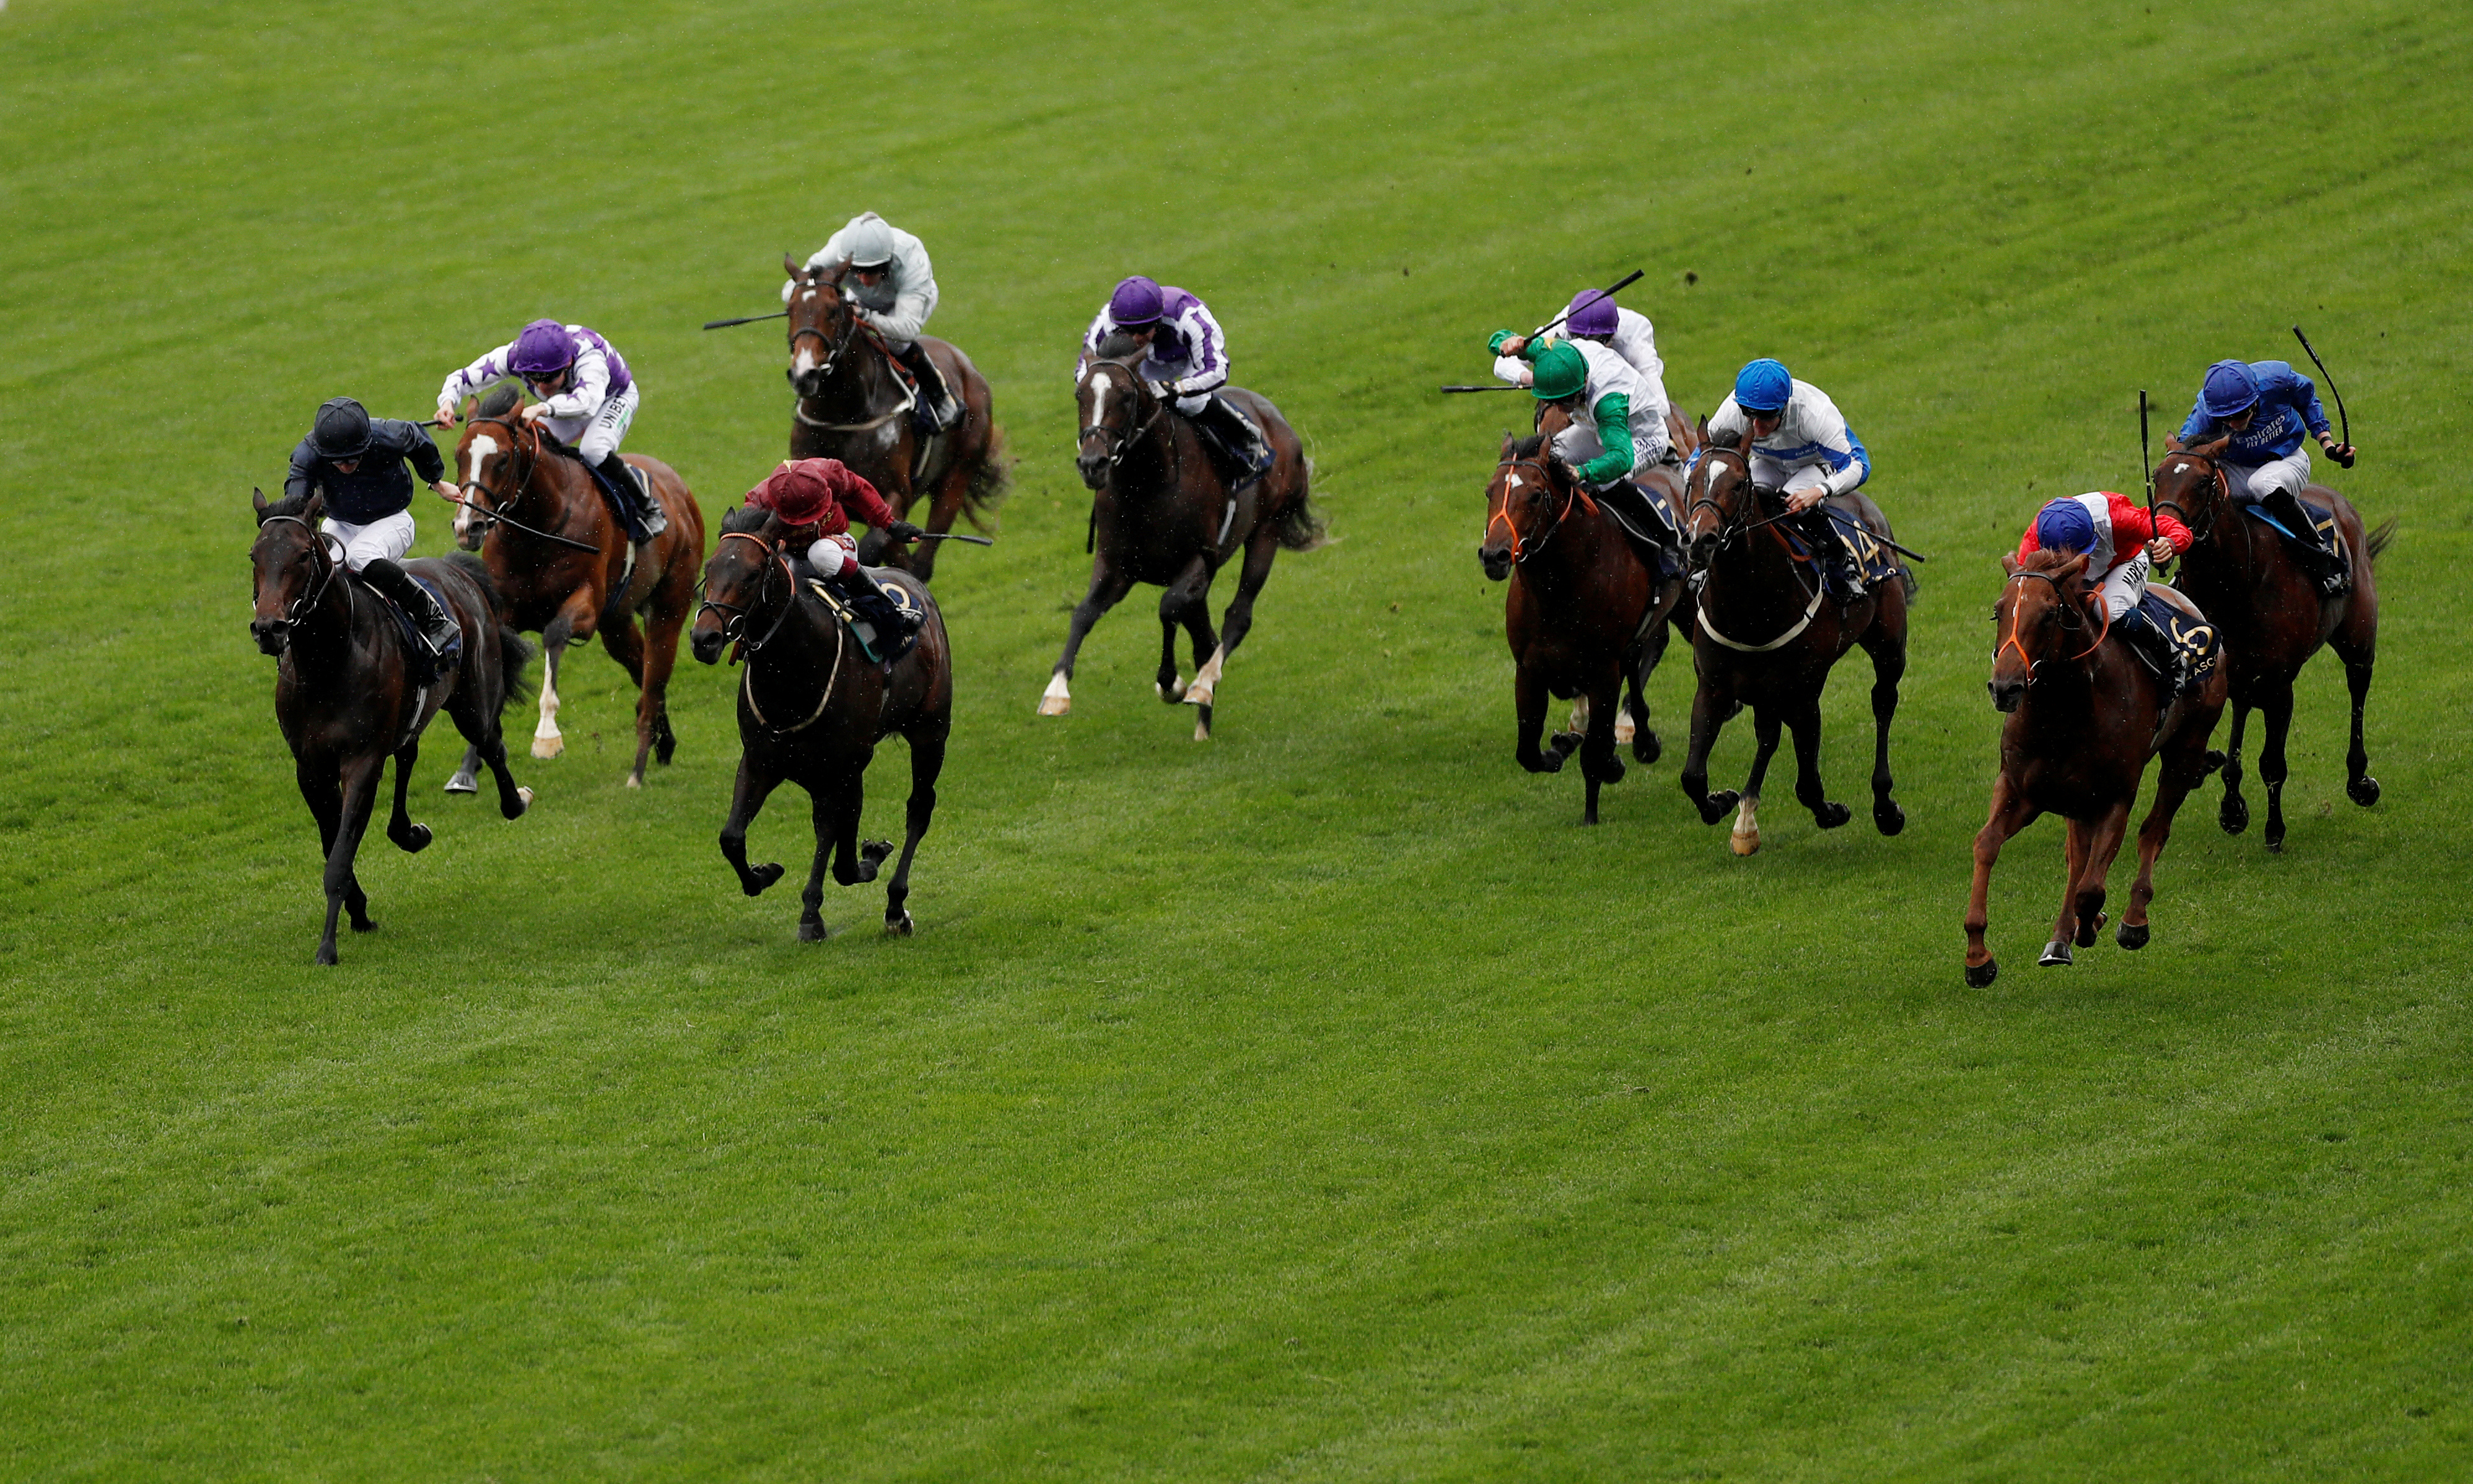 Today's ITV Racing schedule: Race times, TV schedule and ITV7 tips for Champions Day at Ascot